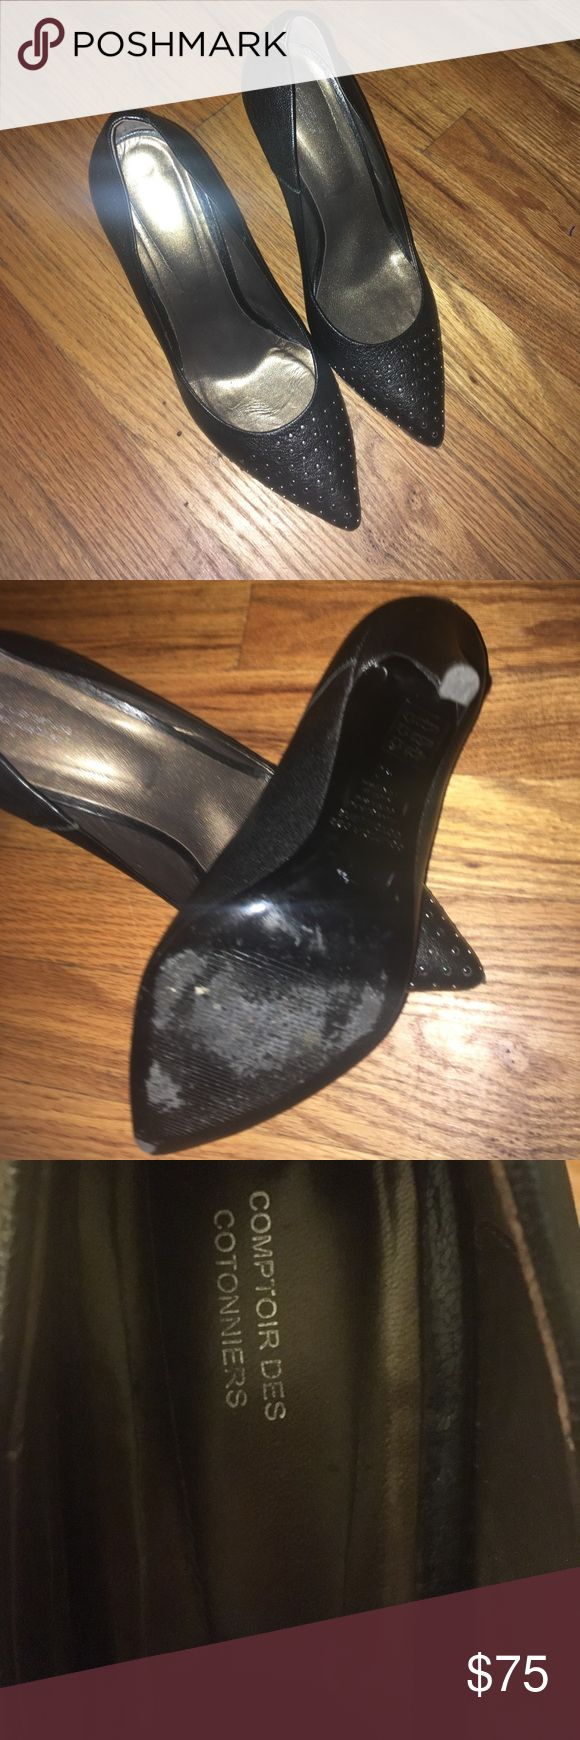 🔥SALE! Comptoir des Cotonniers Black Pumps Sz 40 Stylish Comptoir des Cotonniers Black Pumps - Size 40. Great condition; worn once...my loss is your gain! My absolute favorite shoe is too big for me... if you are a 9.5, this shoe has your name on it!! Get style and comfort in these! Super Comfy and In Excellent condition!! Comptoir Des Cotonniers Shoes Heels